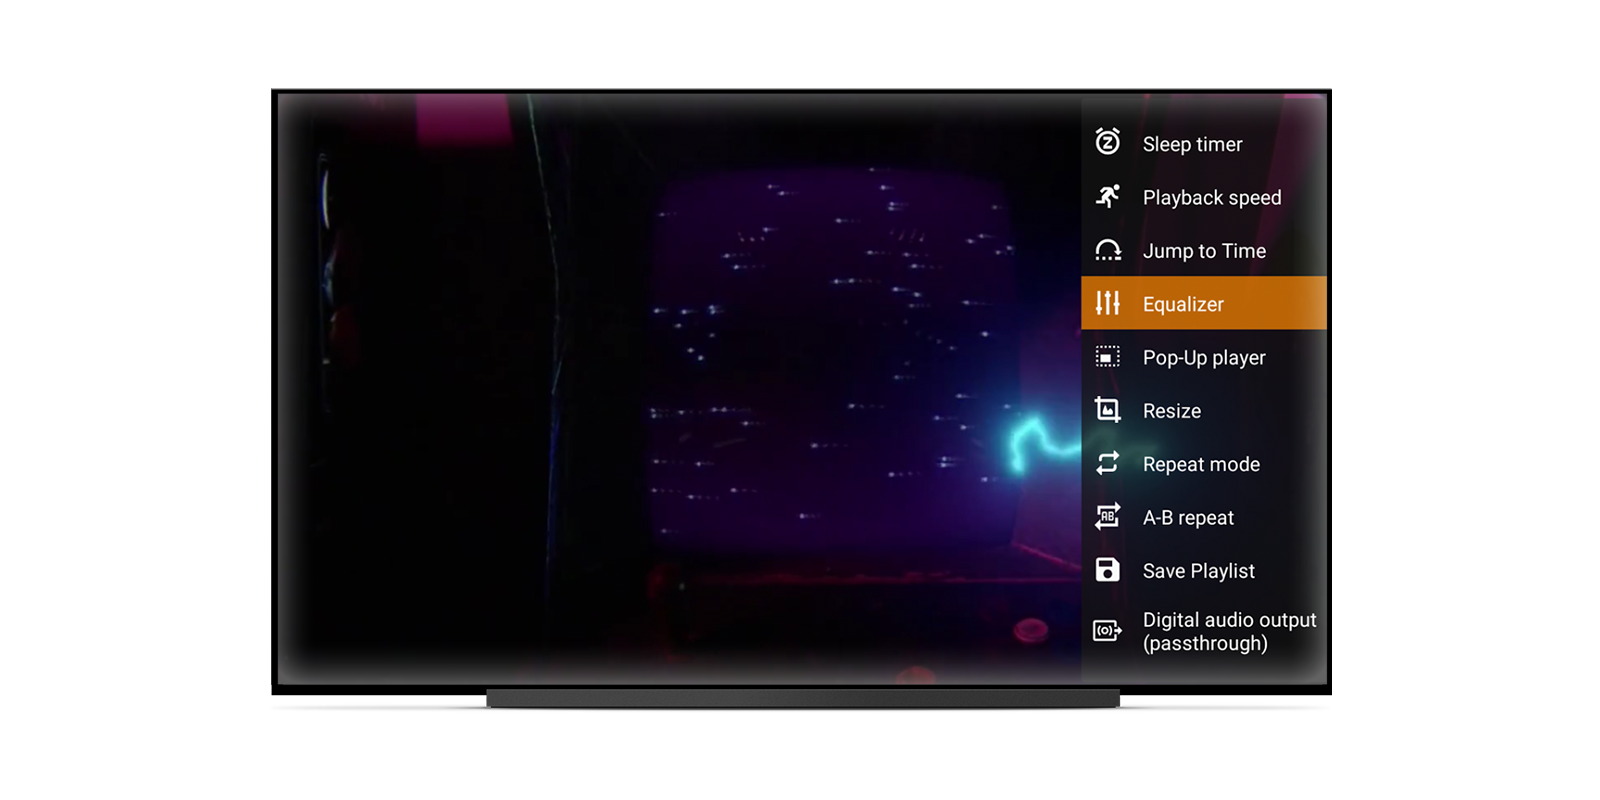 VLC optimizes for large-screen, leanback viewing experiences on Android TV